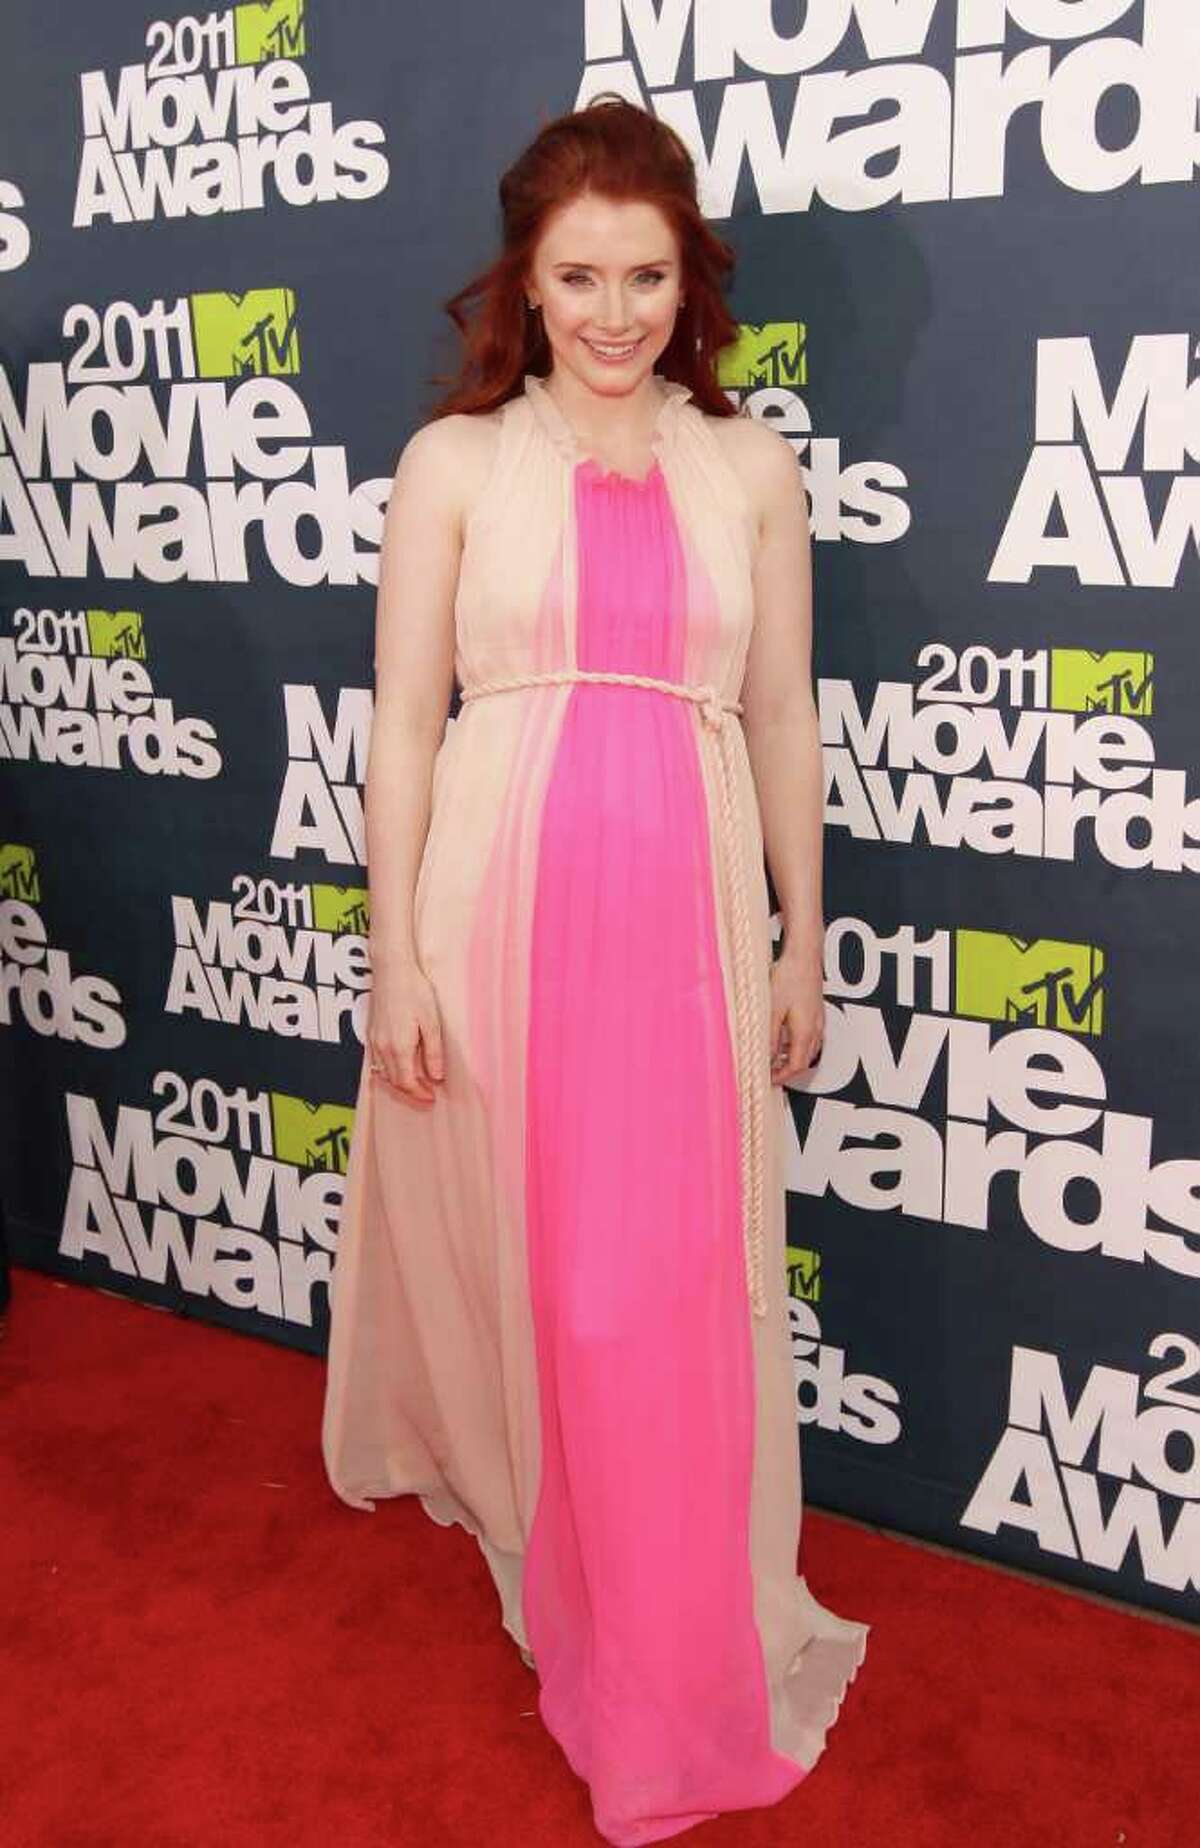 Worst Dressed: Actress Bryce Dallas Howard